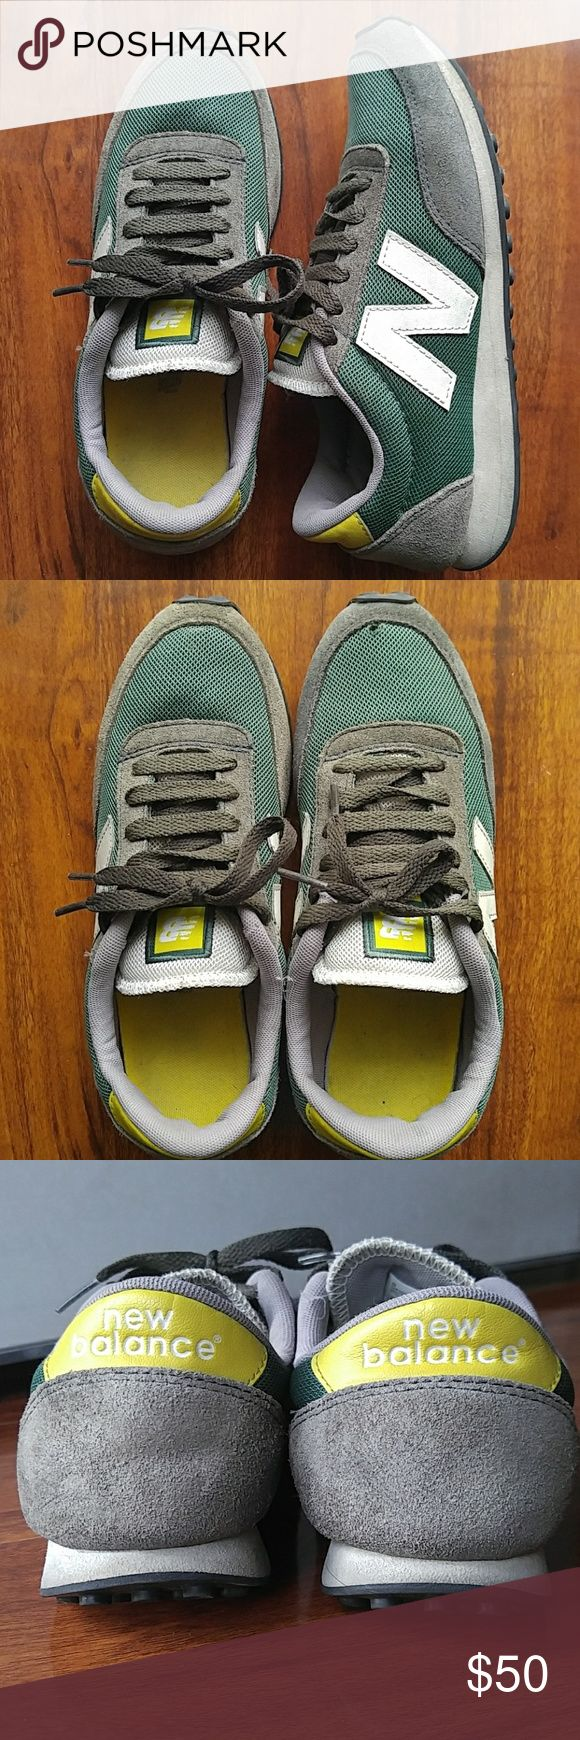 New Balance 410 Retro Running Sneakers Signs of gentle wear as seen in pics. Please inspects pics closely. Price reflects usage. Worn a few times. Minor tiny hole at right toe tip as seen in pic #2. No other rips/tears/peels/stains, other than minor dust stains from usage. Outer soles in good used condition. Removable inner padded soles. Hard to find color, purchased in UK in late 2000s. Fits women's sz 5.5-6. New Balance Shoes Sneakers